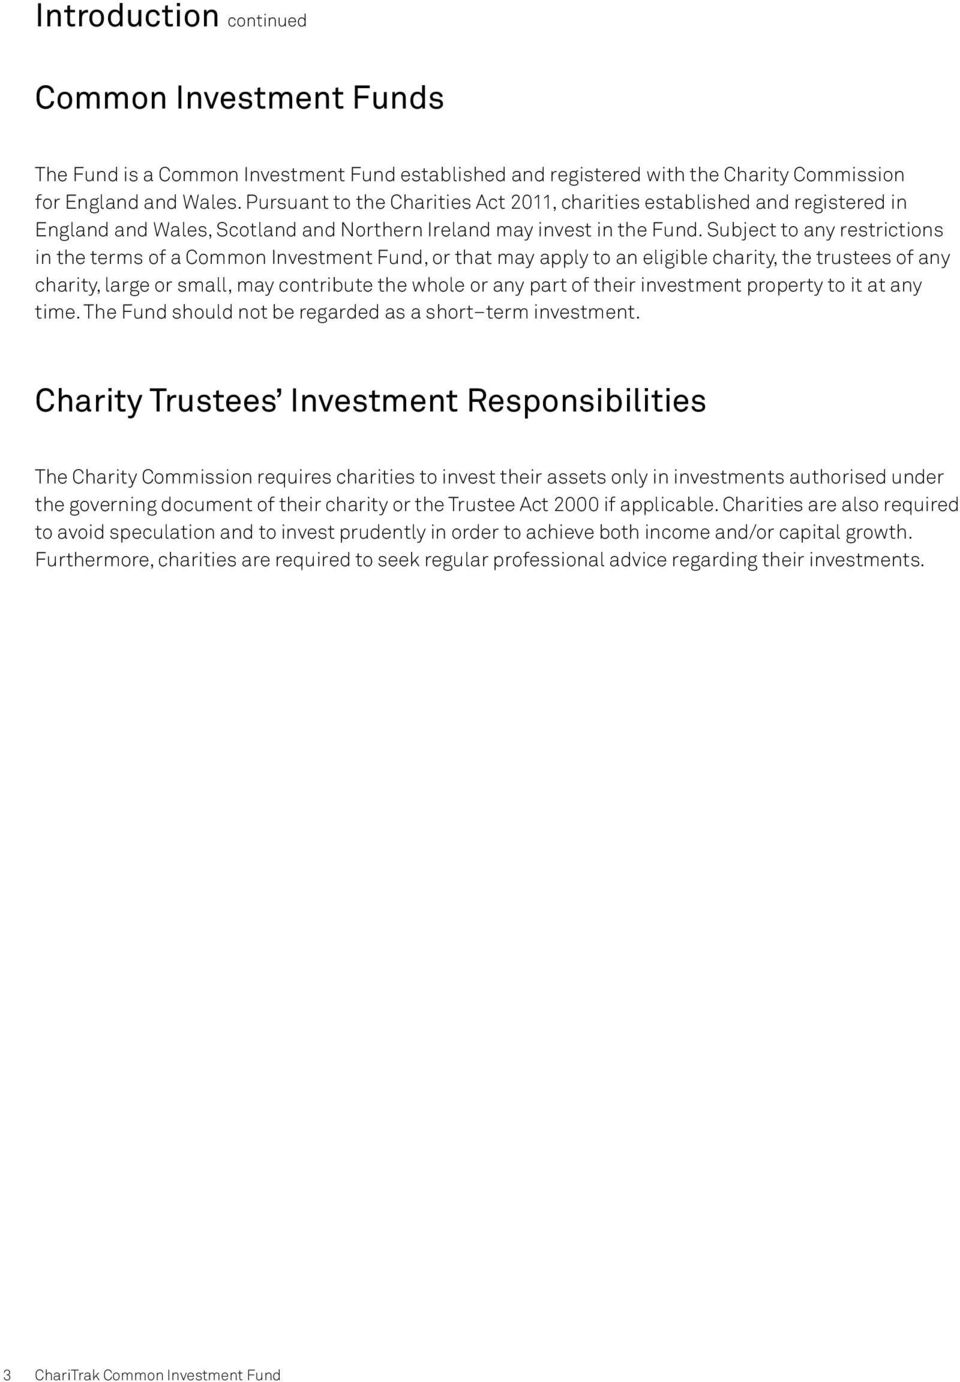 Subject to any restrictions in the terms of a Common Investment Fund, or that may apply to an eligible charity, the trustees of any charity, large or small, may contribute the whole or any part of